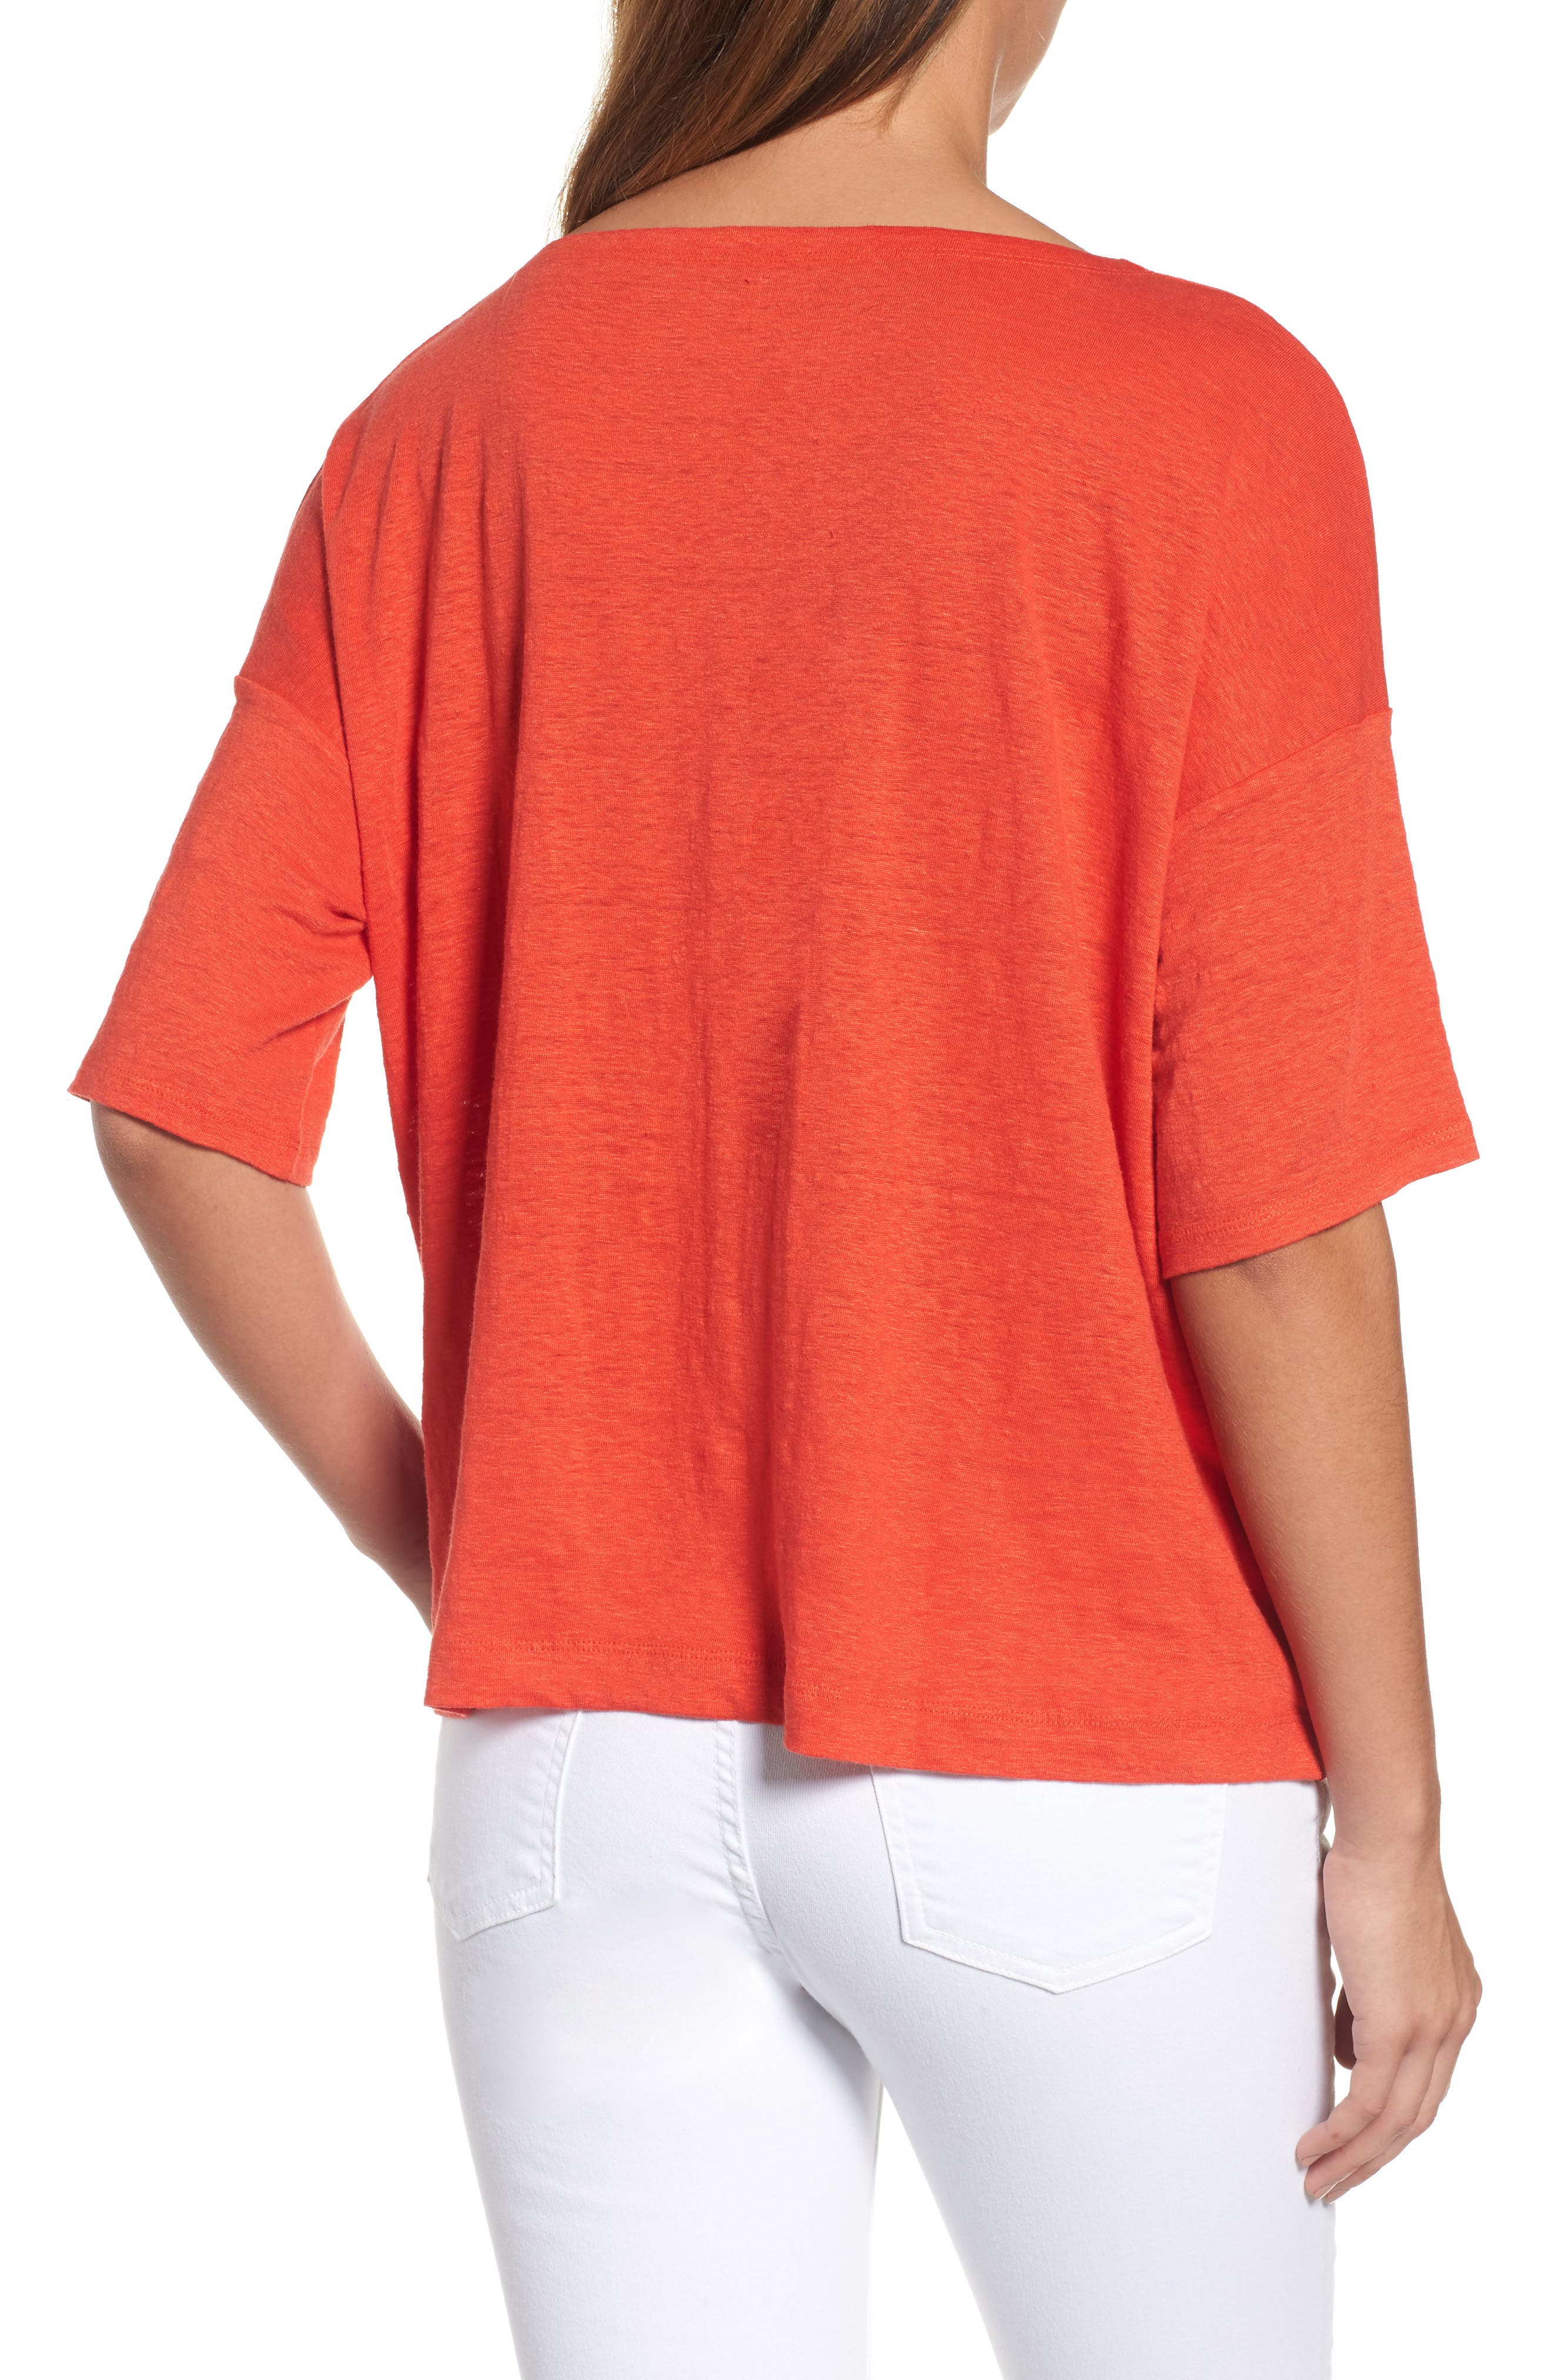 Organic Linen Jersey Boxy Top,                             Alternate thumbnail 13, color,